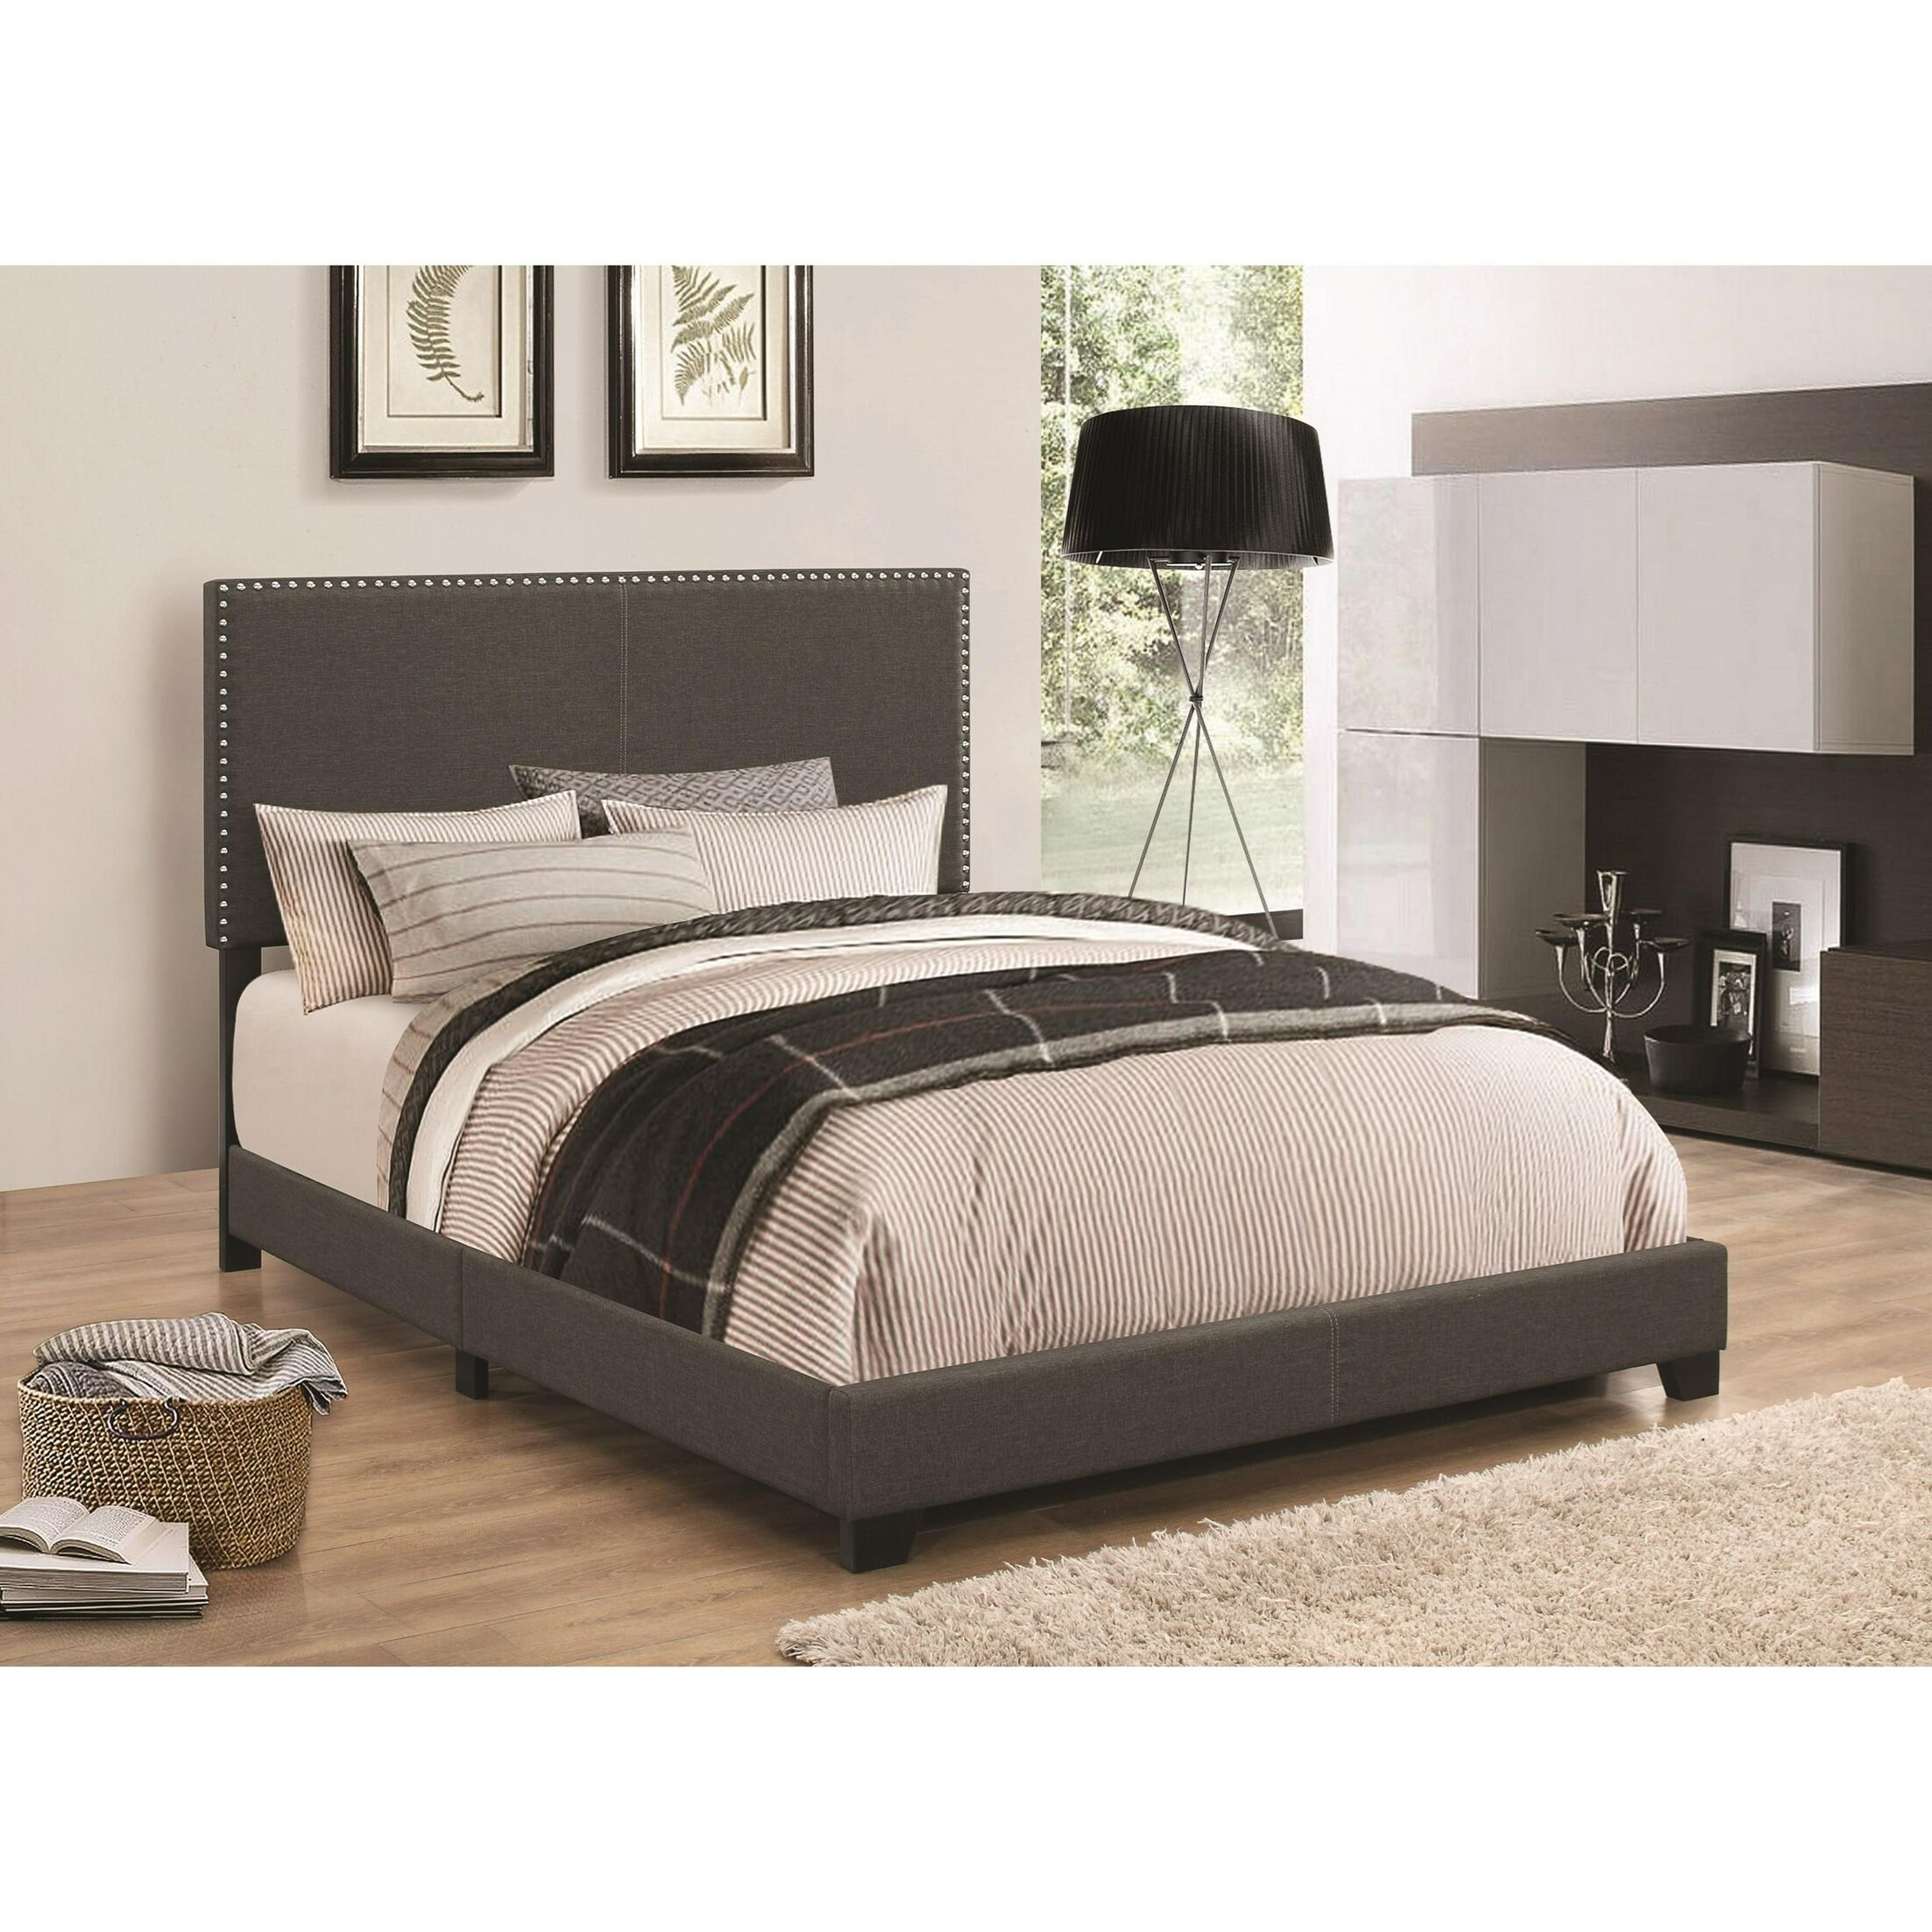 Kenworthy Upholstered Sleigh Bed Size: California King, Color: Espresso